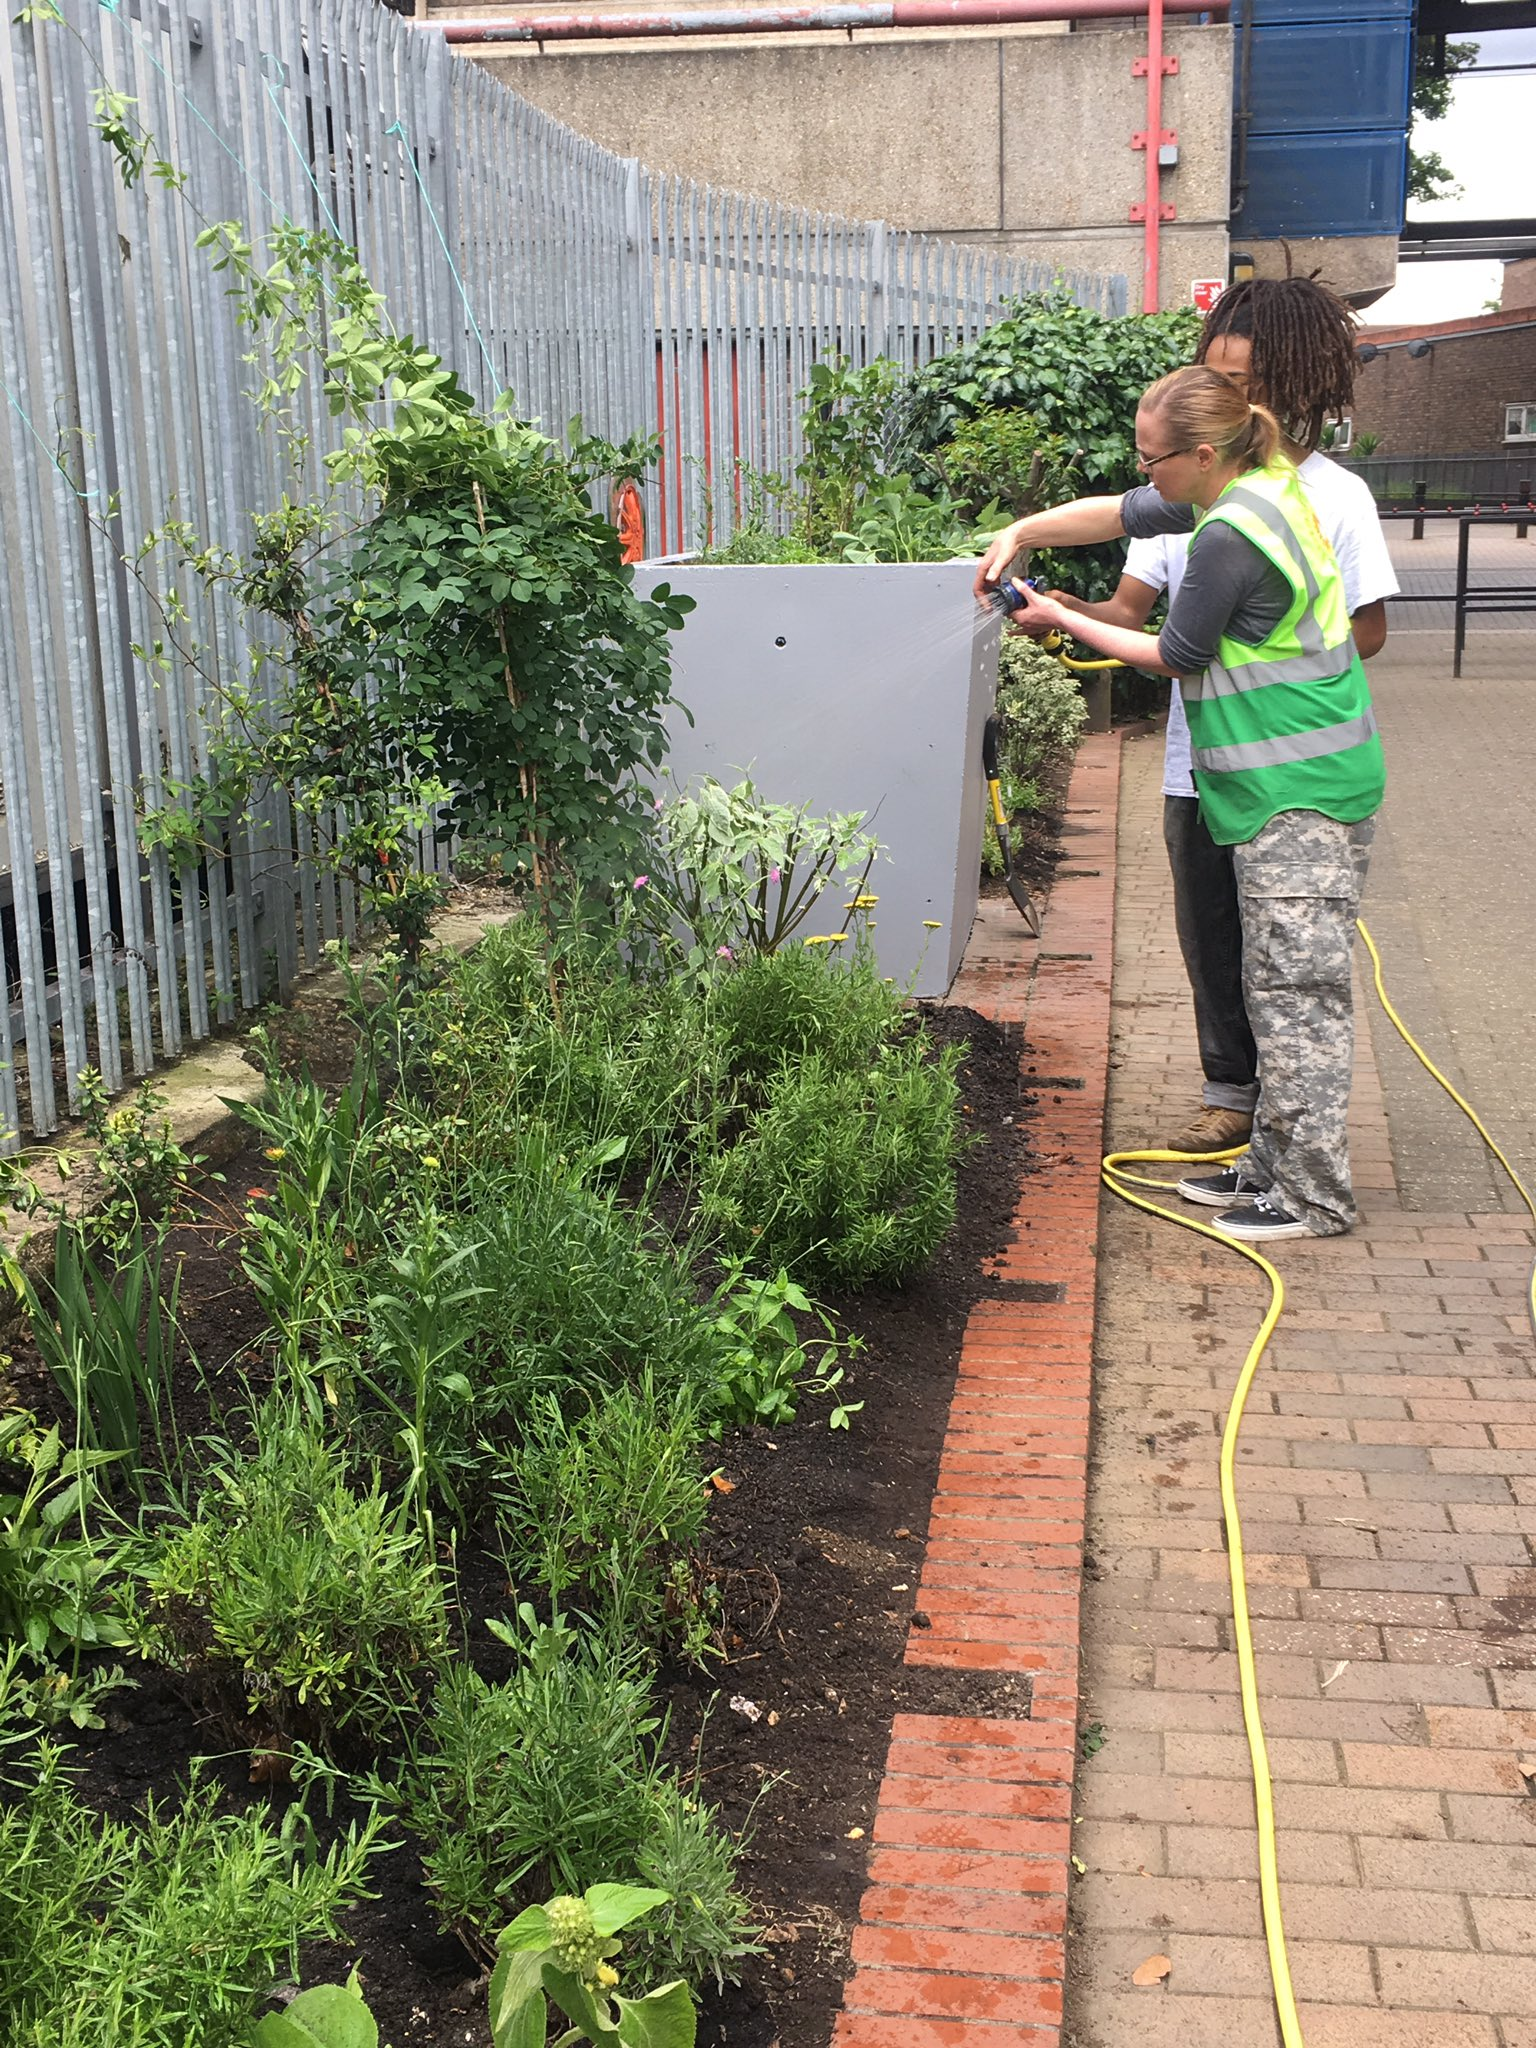 Great fun this afternoon with @EdibleBusStop, planting berries, herbs and flowers at Brixton's 'Barrier Block'. @ChelseaFringe @csmMANE https://t.co/d0NLbFUC6Q